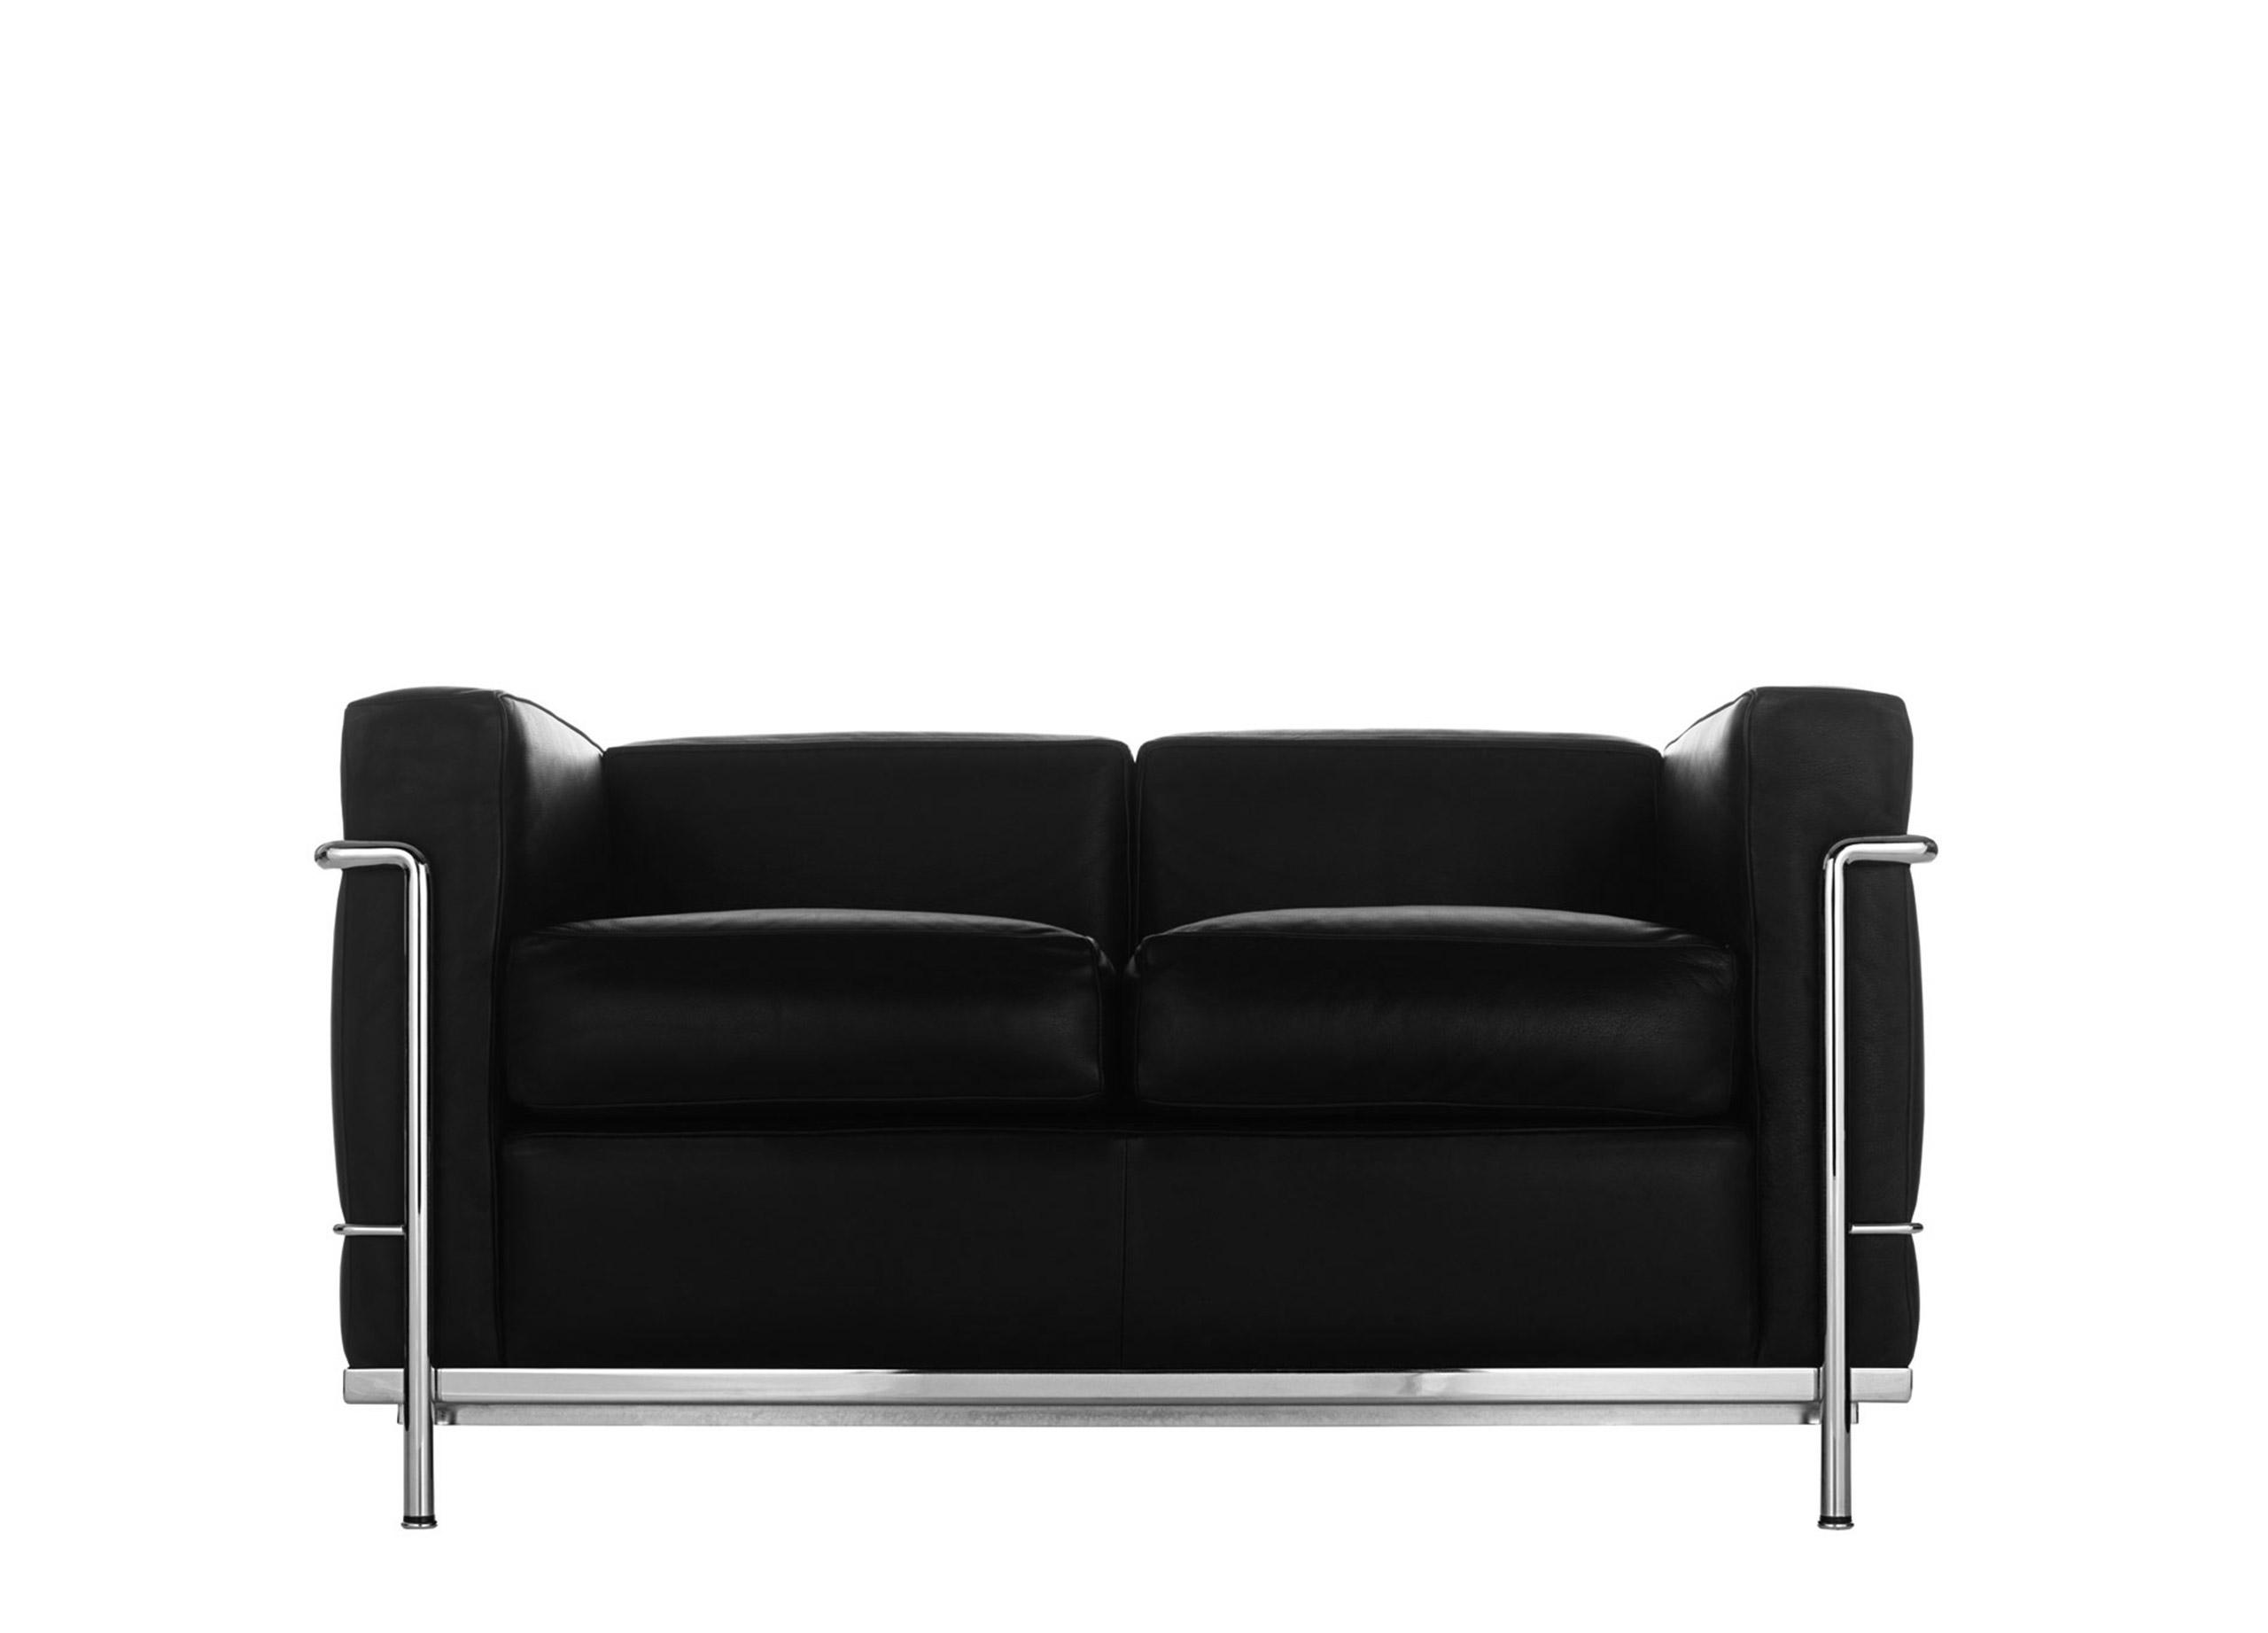 cassina lc2 zweisitzer the qvest shop. Black Bedroom Furniture Sets. Home Design Ideas